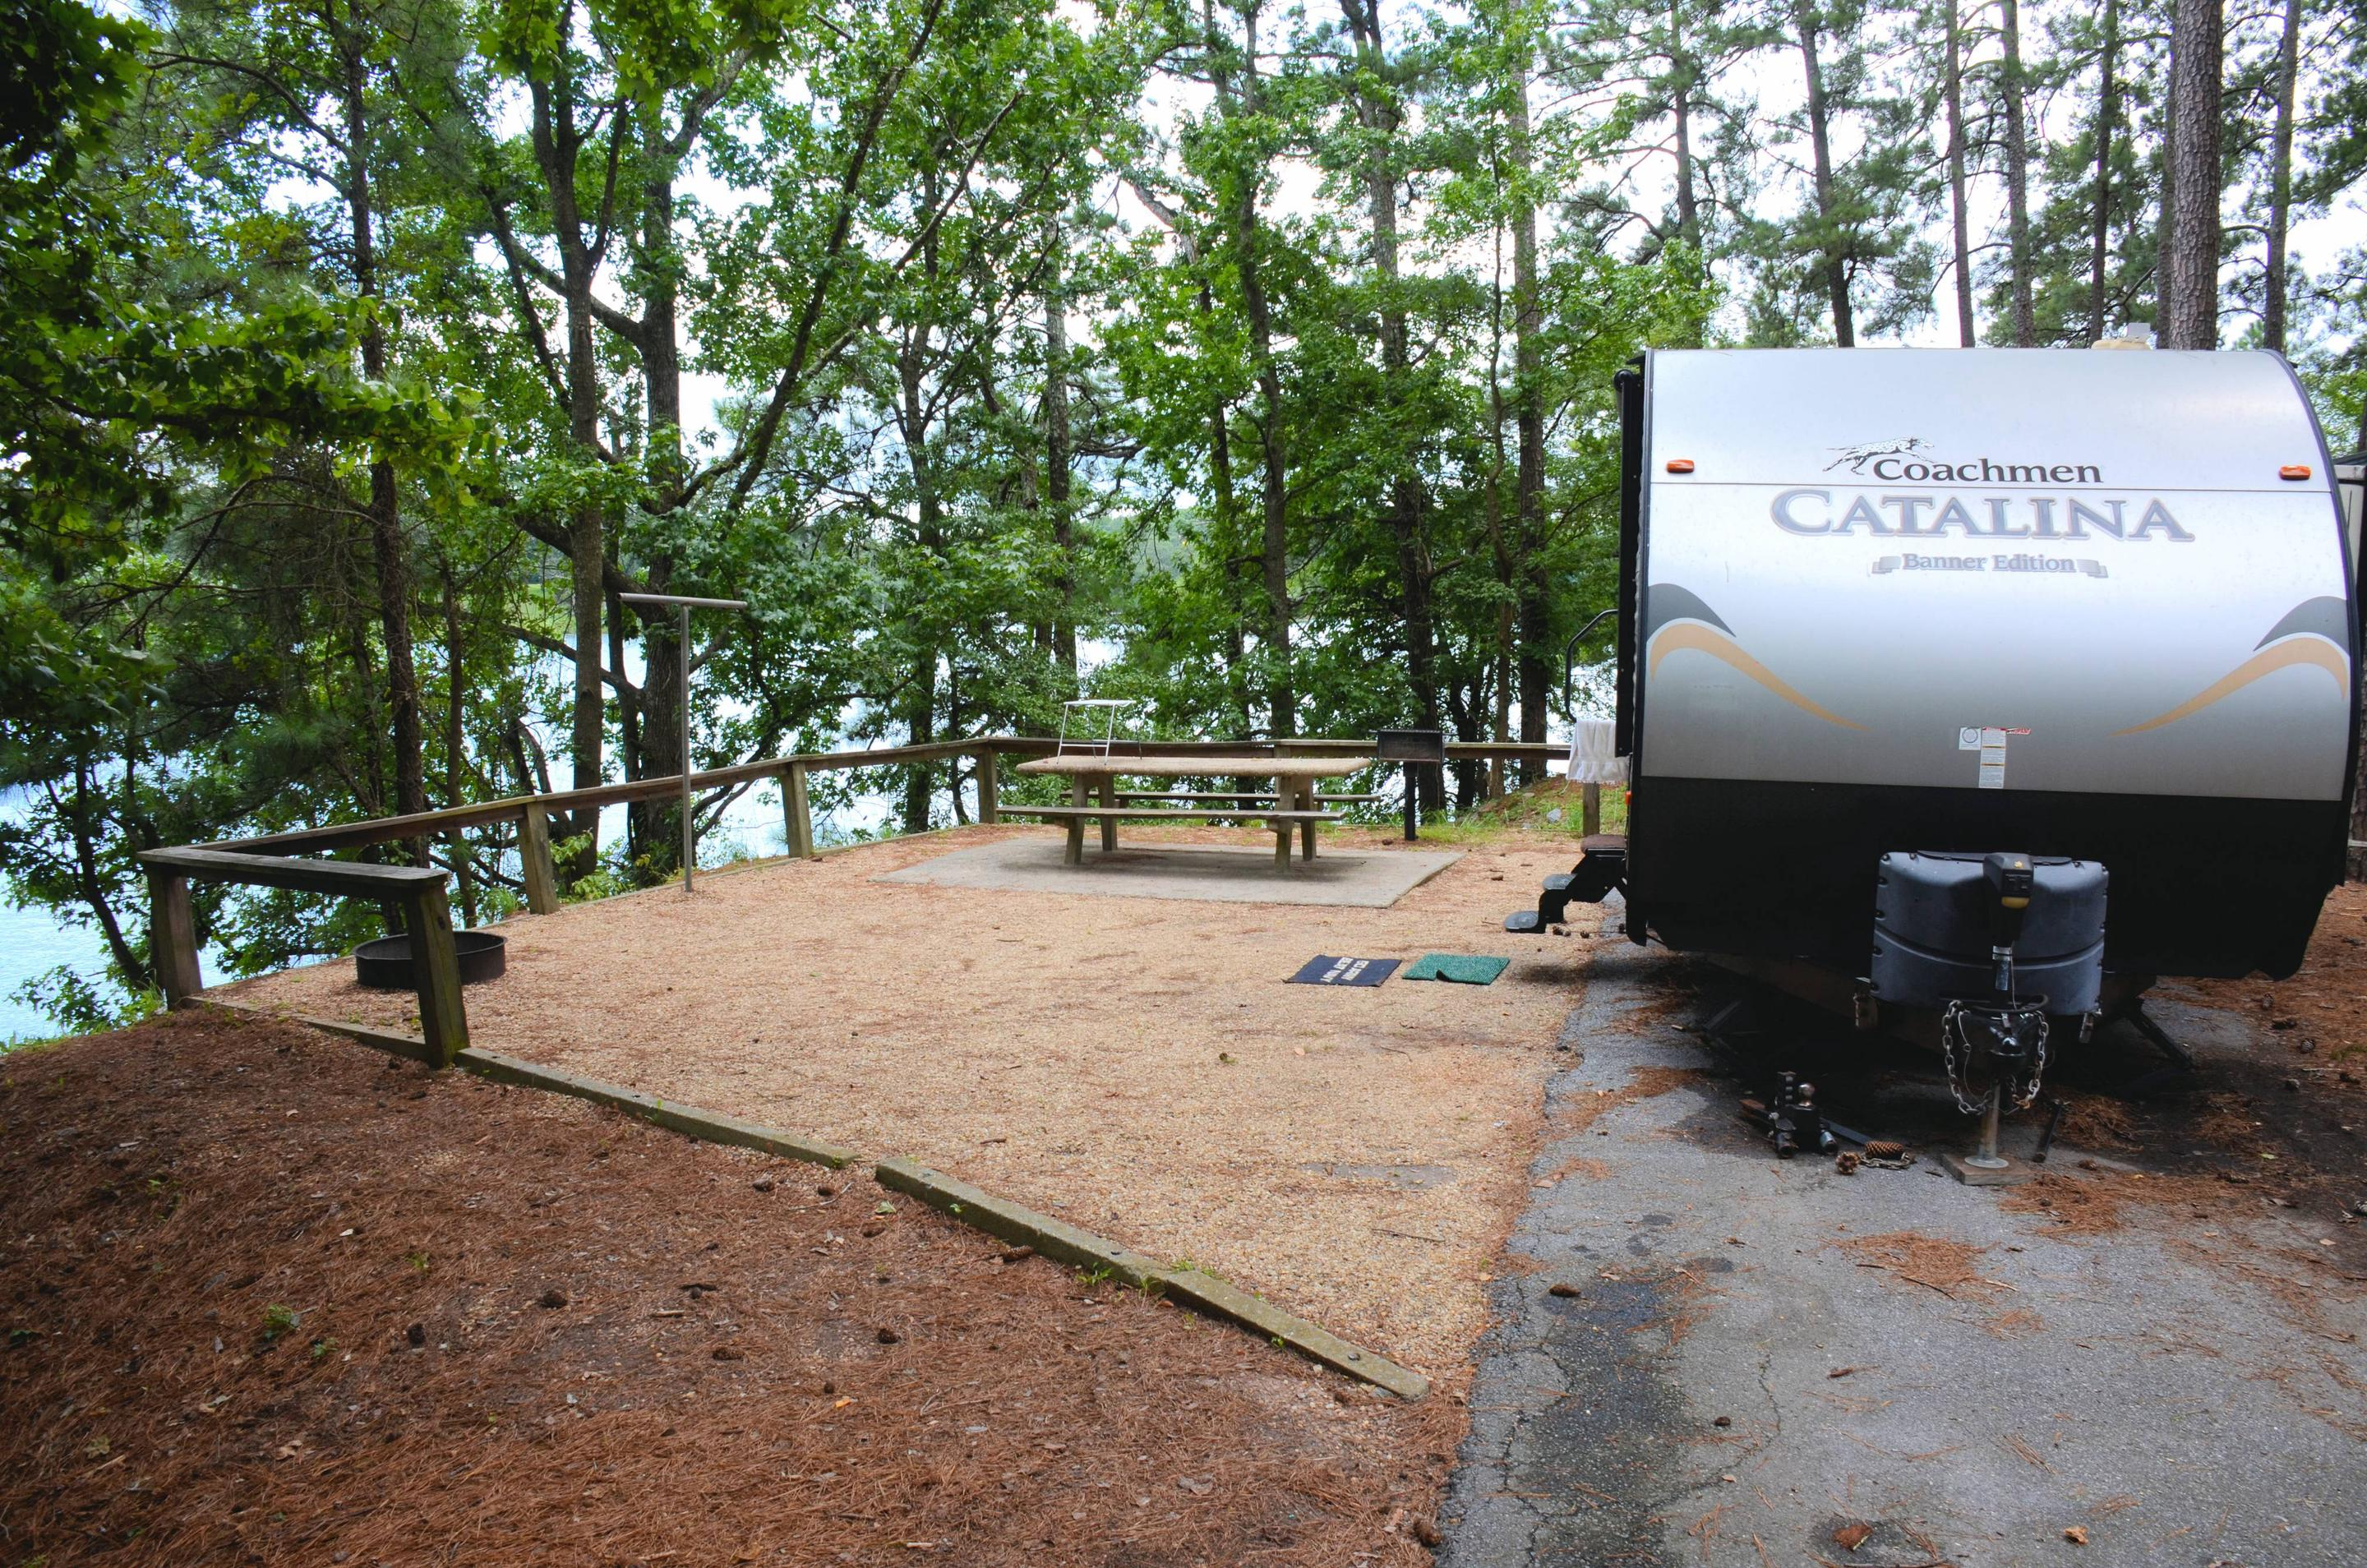 Awning-side clearance, campsite view.McKinney Campground, campsite 126.